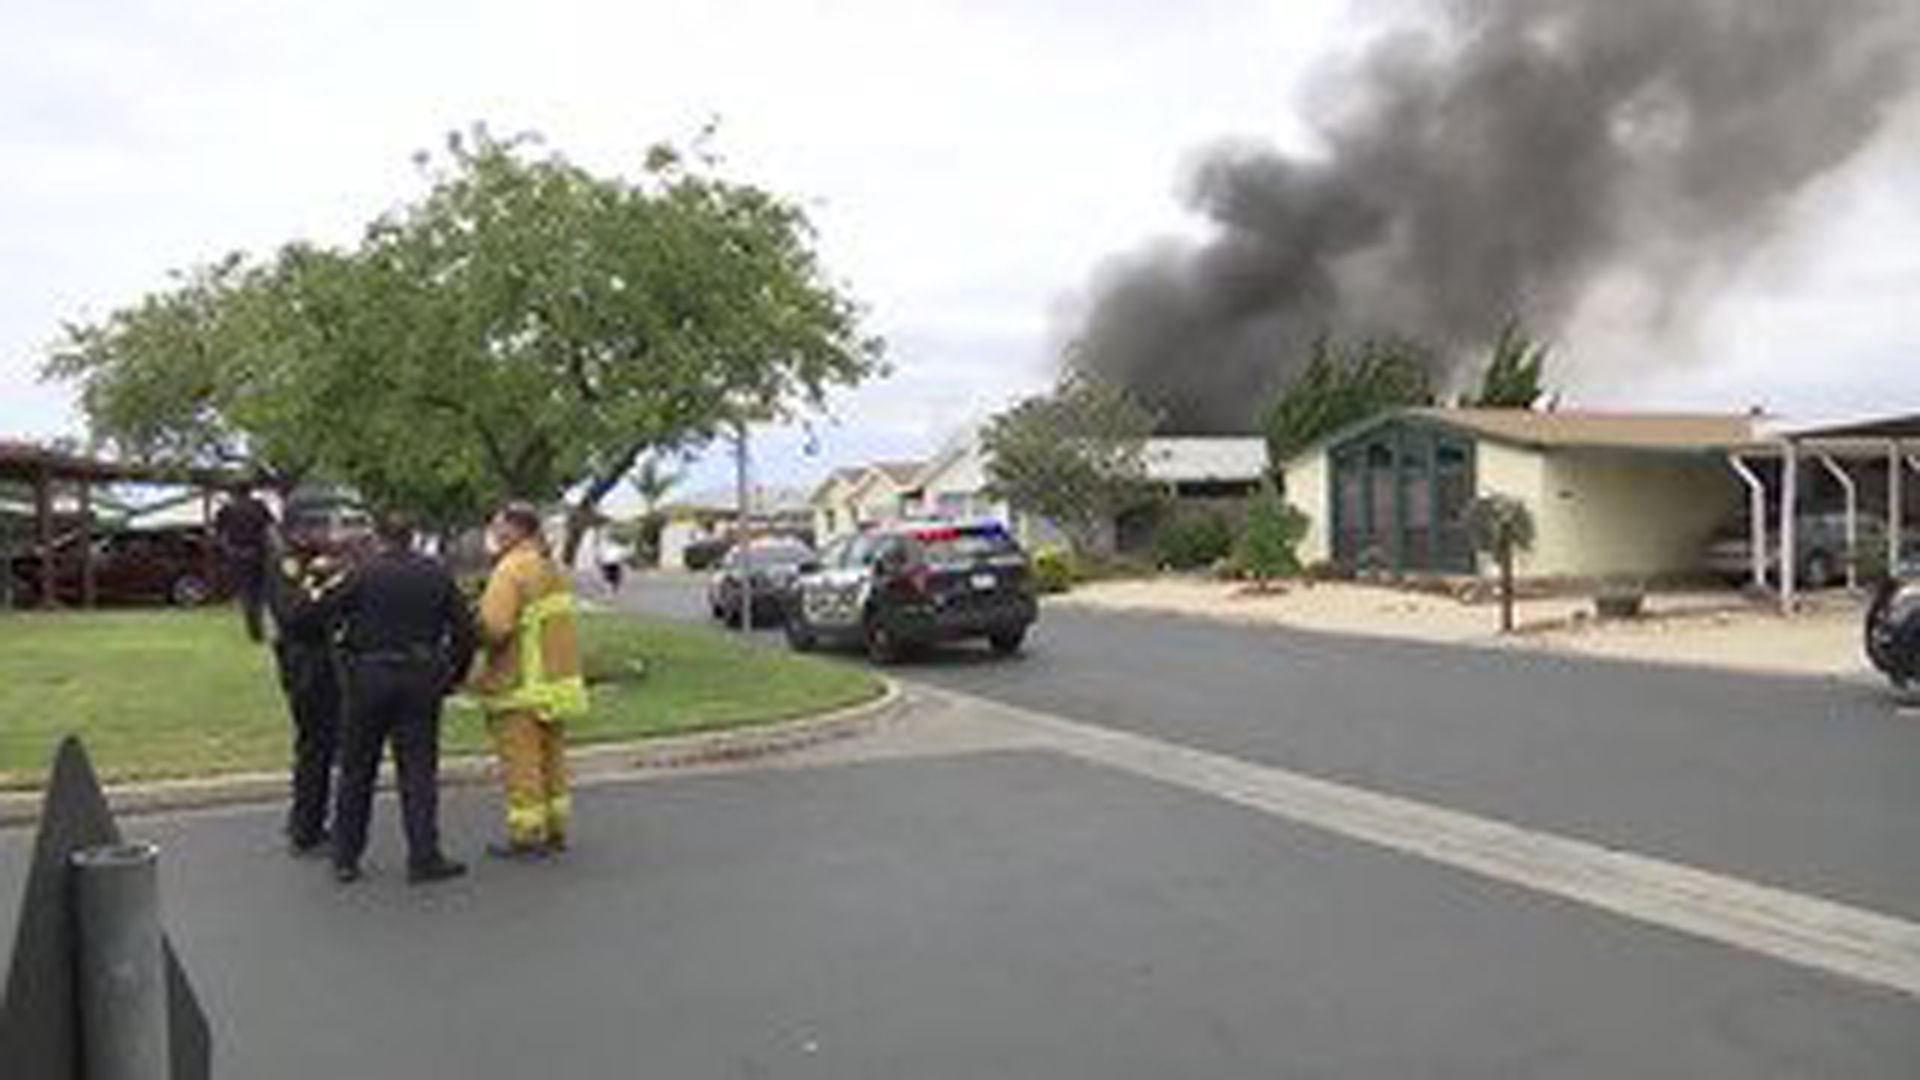 Five people died after a shooting and mobile home fire in Santa Maria. (Credit: KEYT)